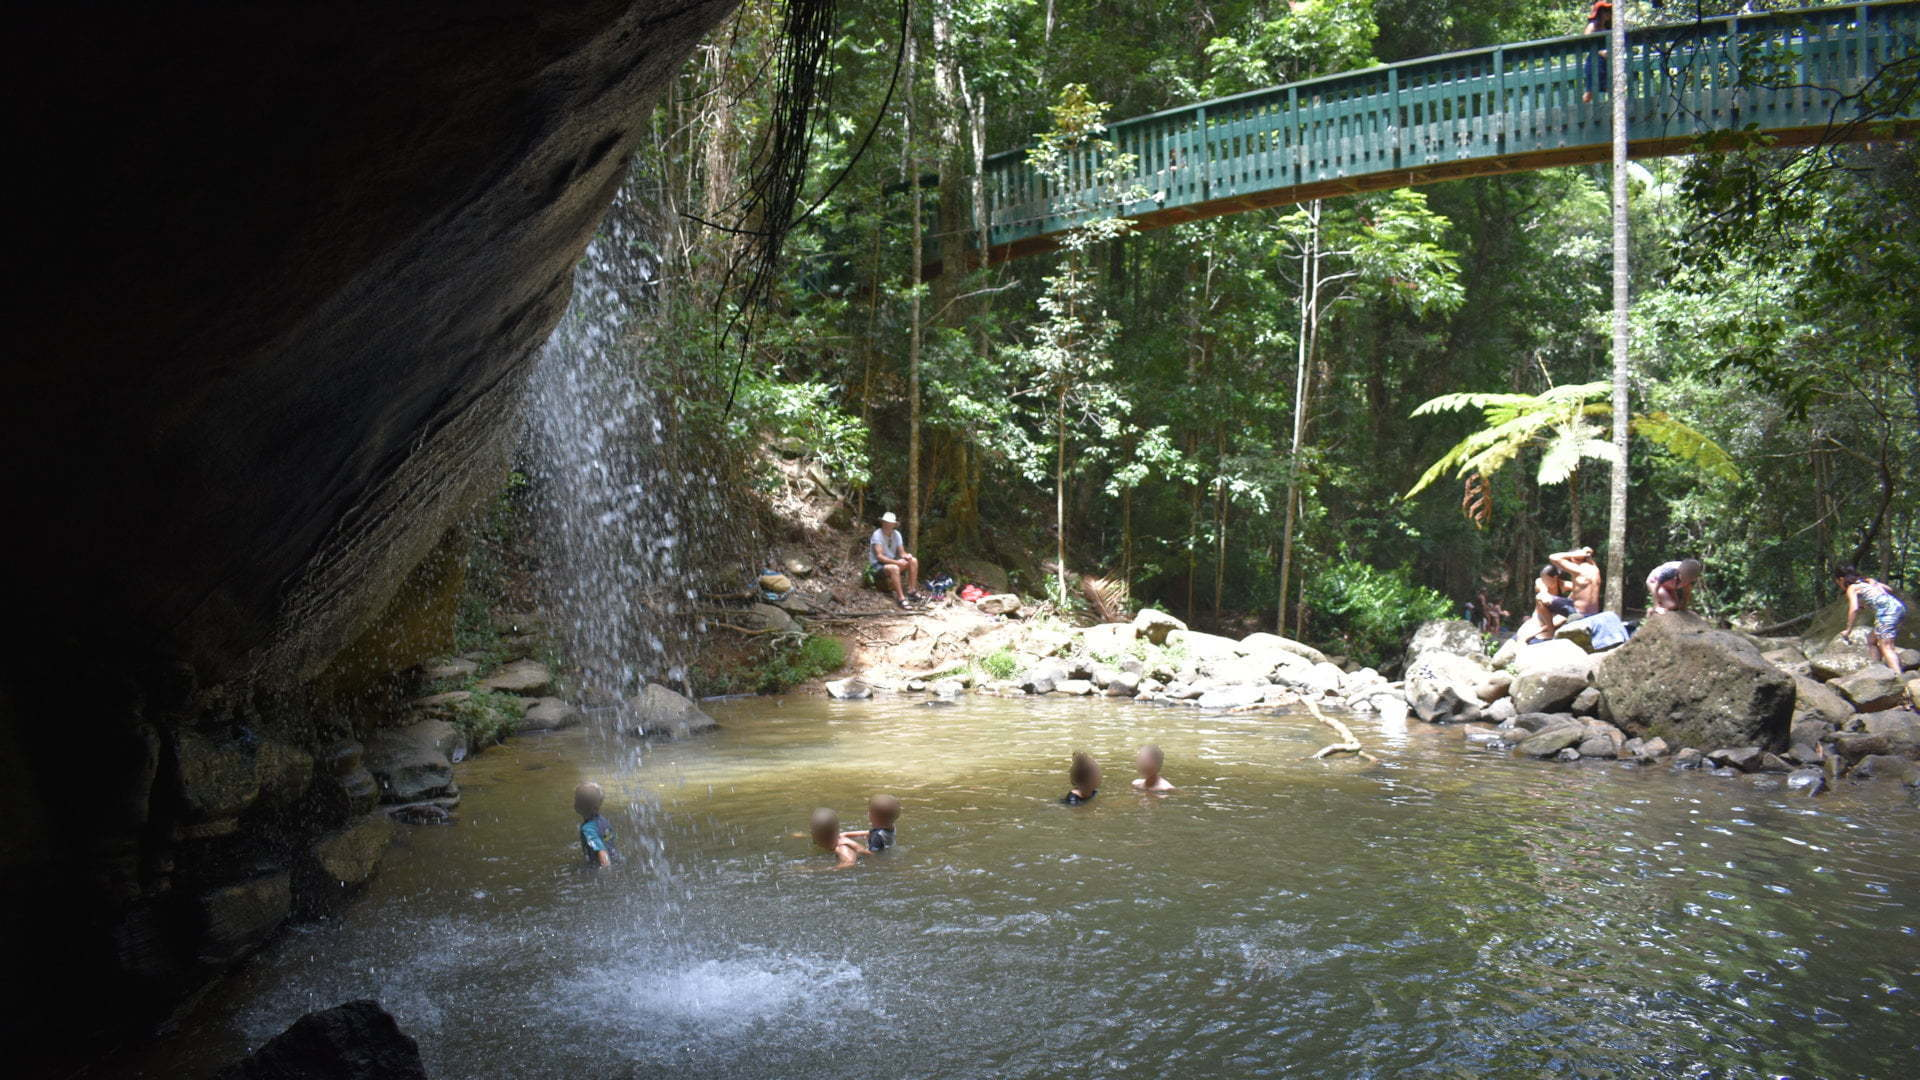 Waterfall flowing into a waterhole with an arch foot bridge and rainforest in the background, taken at Serenity Falls in Buderim Forest Park